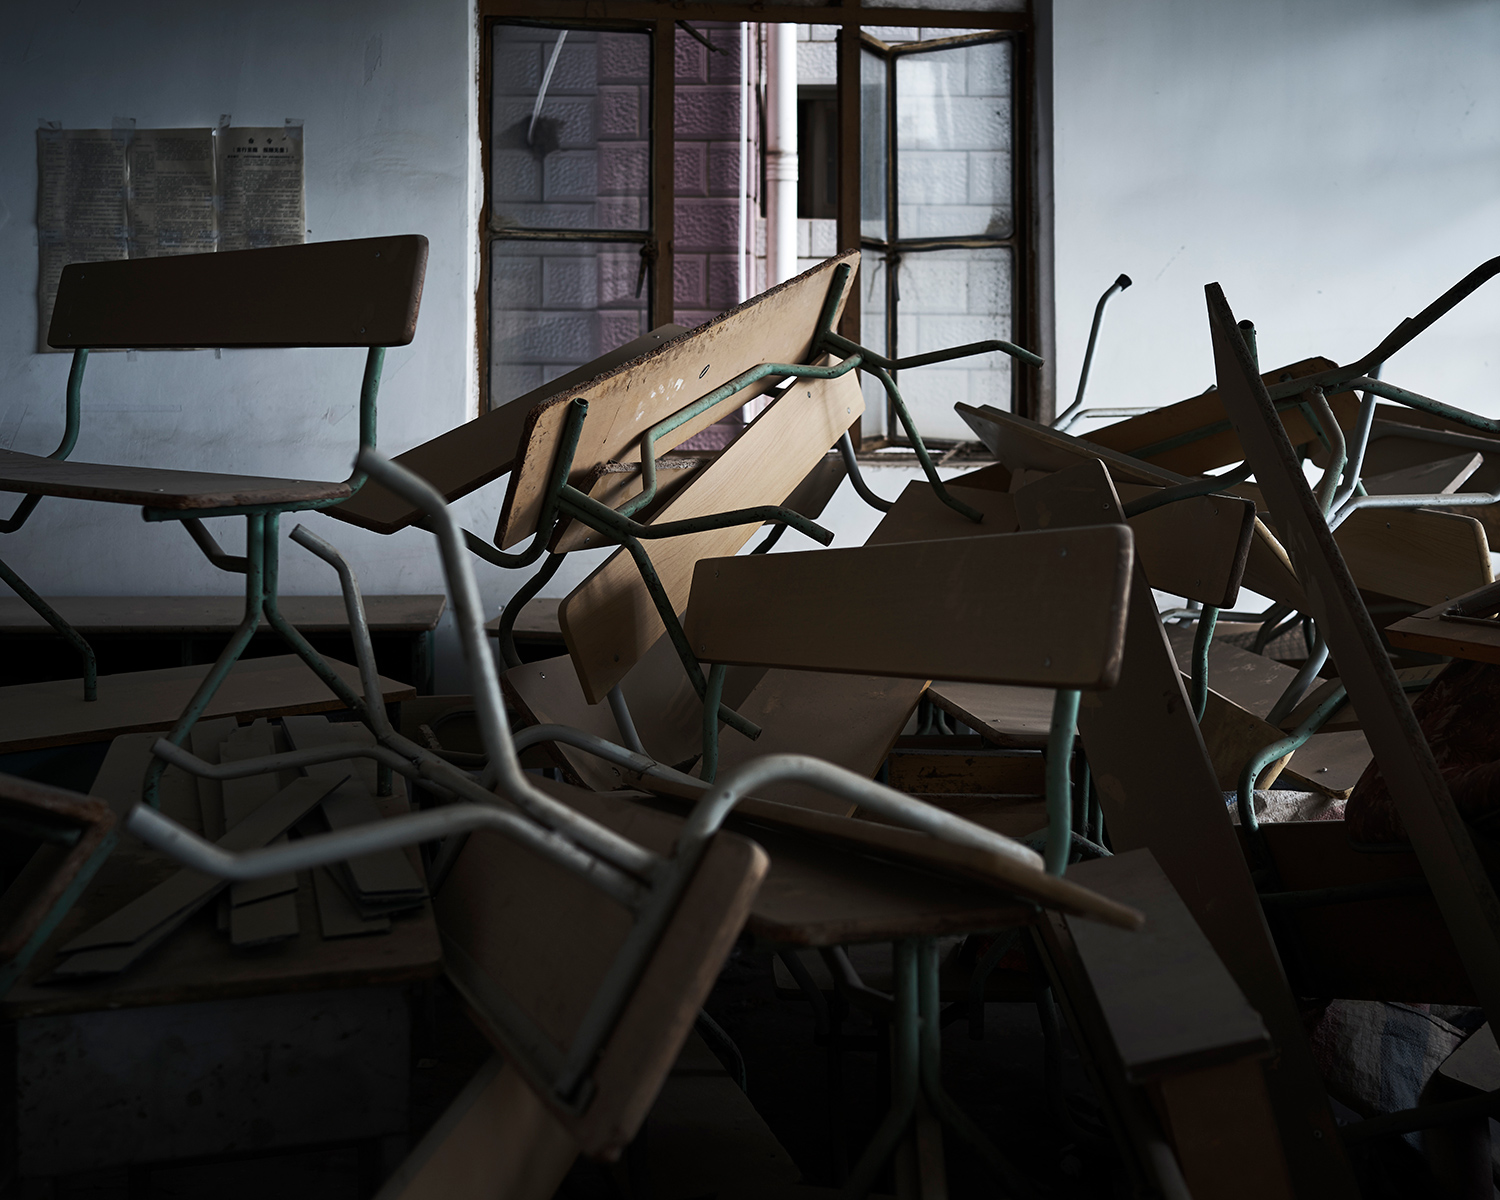 A pile of abandoned chairs and desks in Nanguan Mosque, June 2016. Since the expulsion of Muslims from outside of Yunnan in 2014, the number of students has declined significantly. Many classrooms have remained empty.